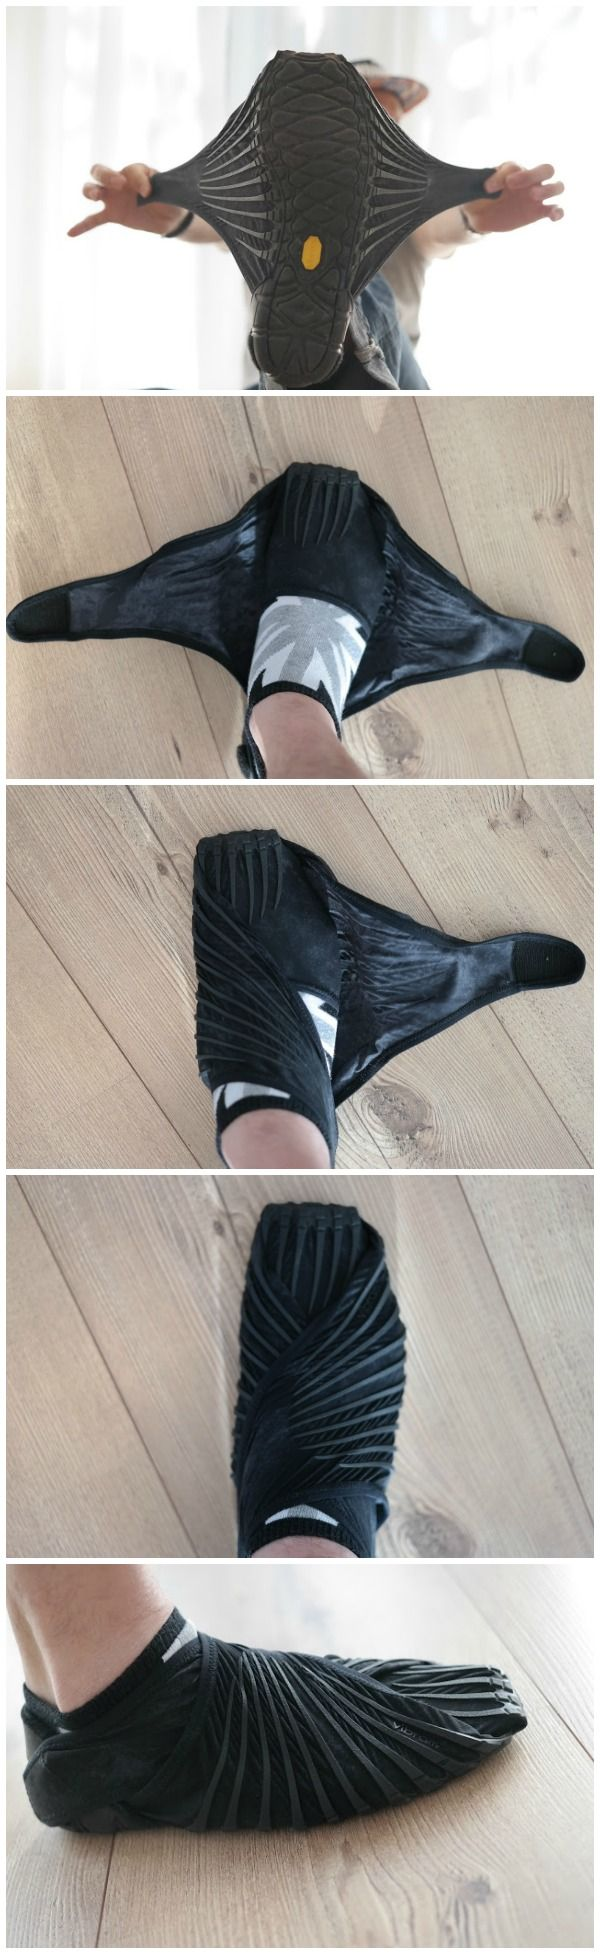 Vibram Furoshiki is the first wrap-around sole that adapts perfectly to the foot. Wrap around design ensures wearability, freedom of movement and comfort. / TechNews24h.com